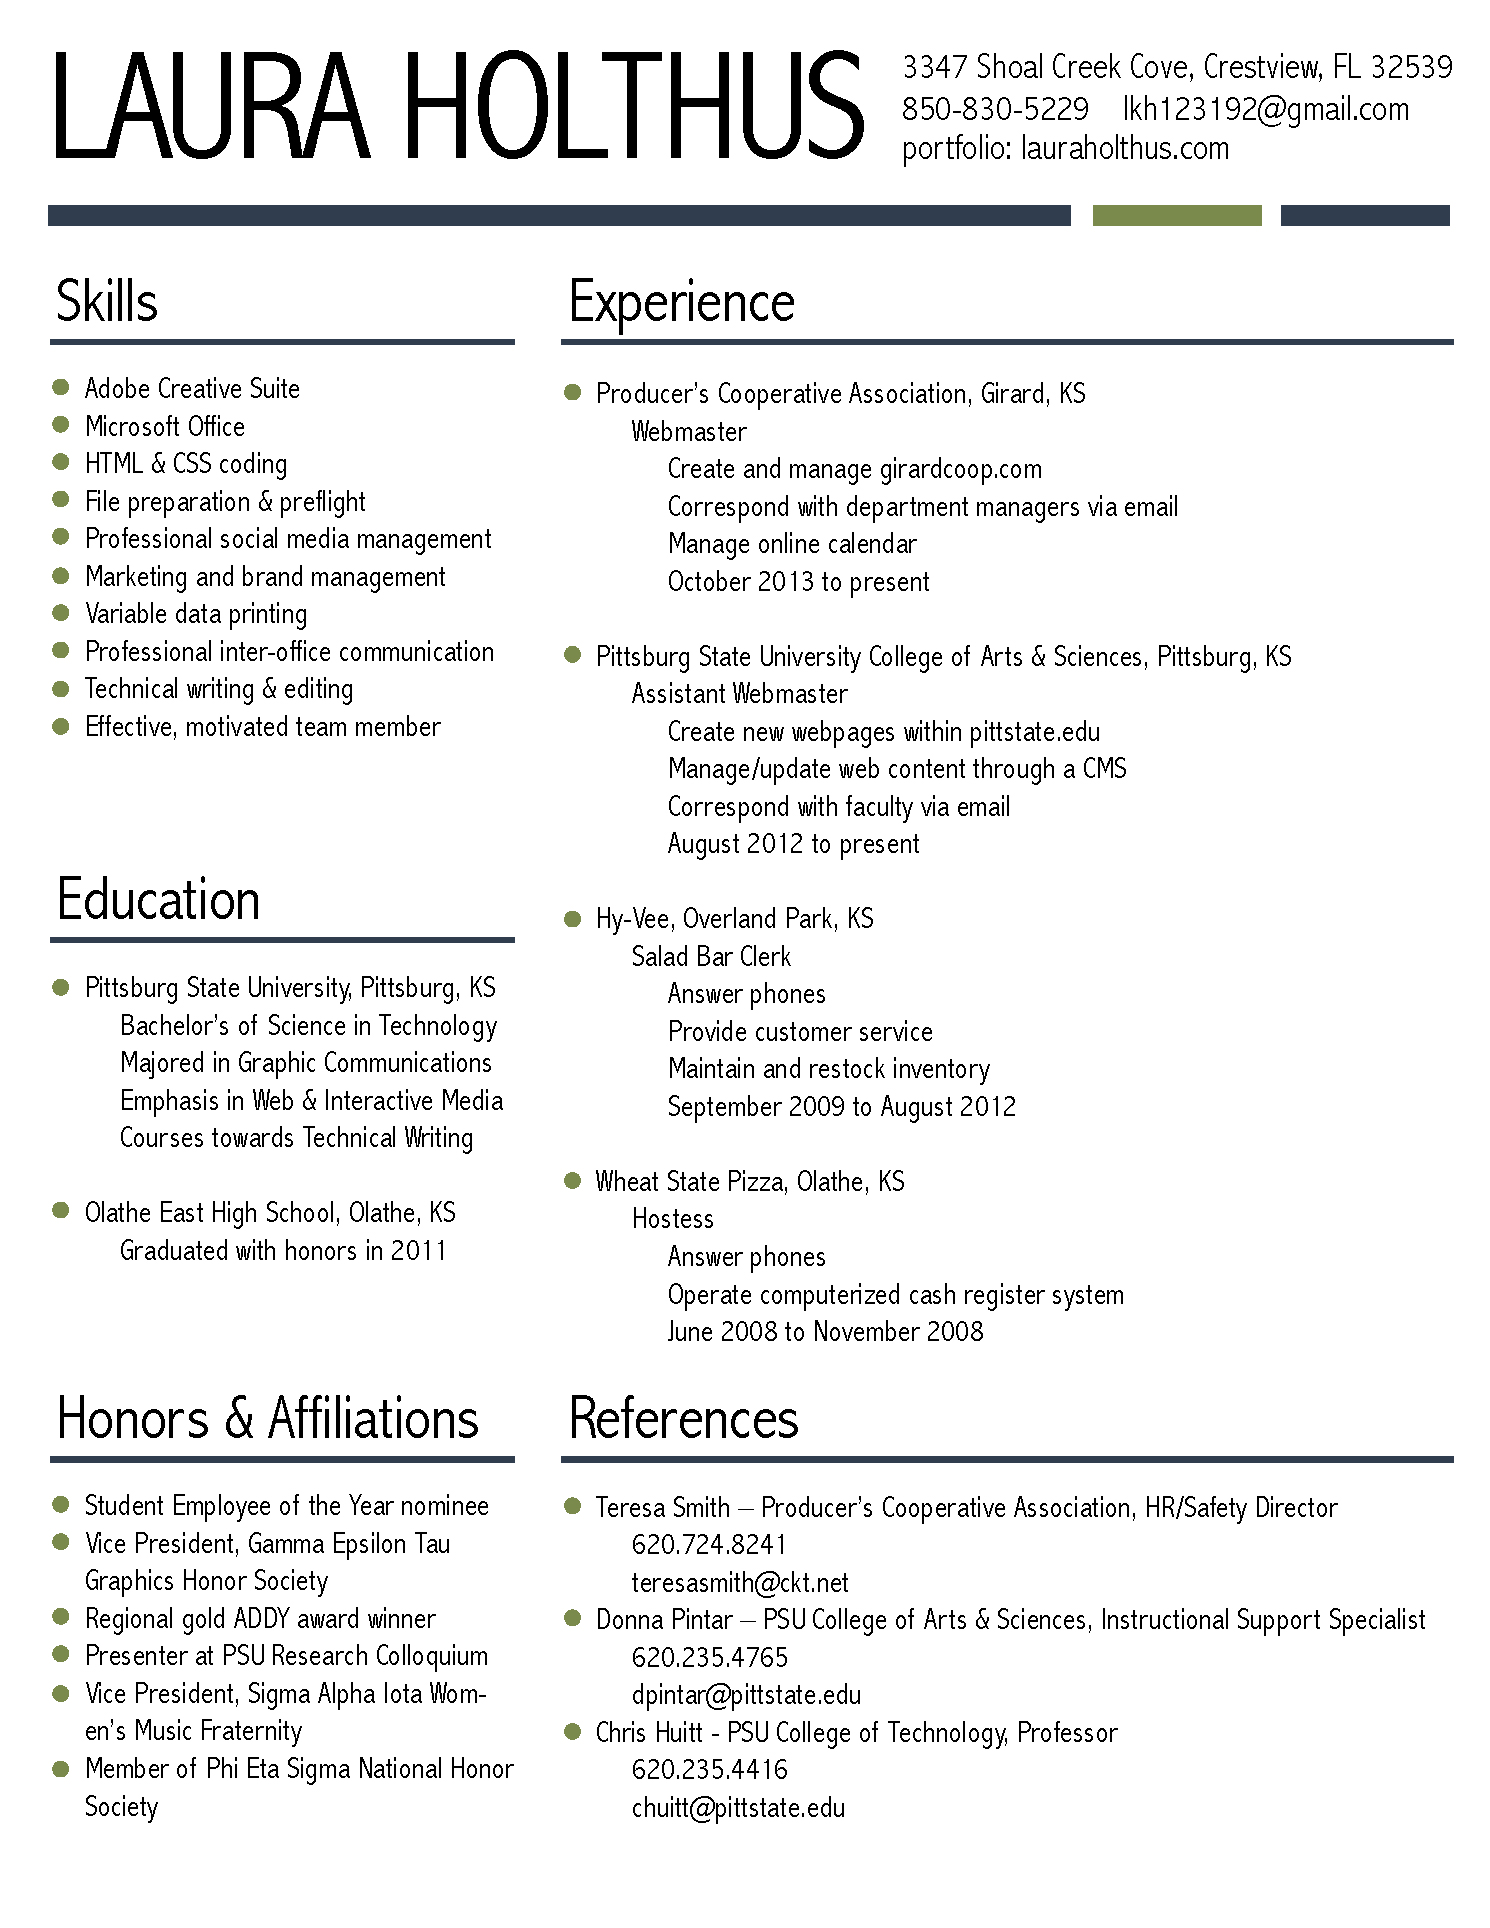 Resume Laura Holthus